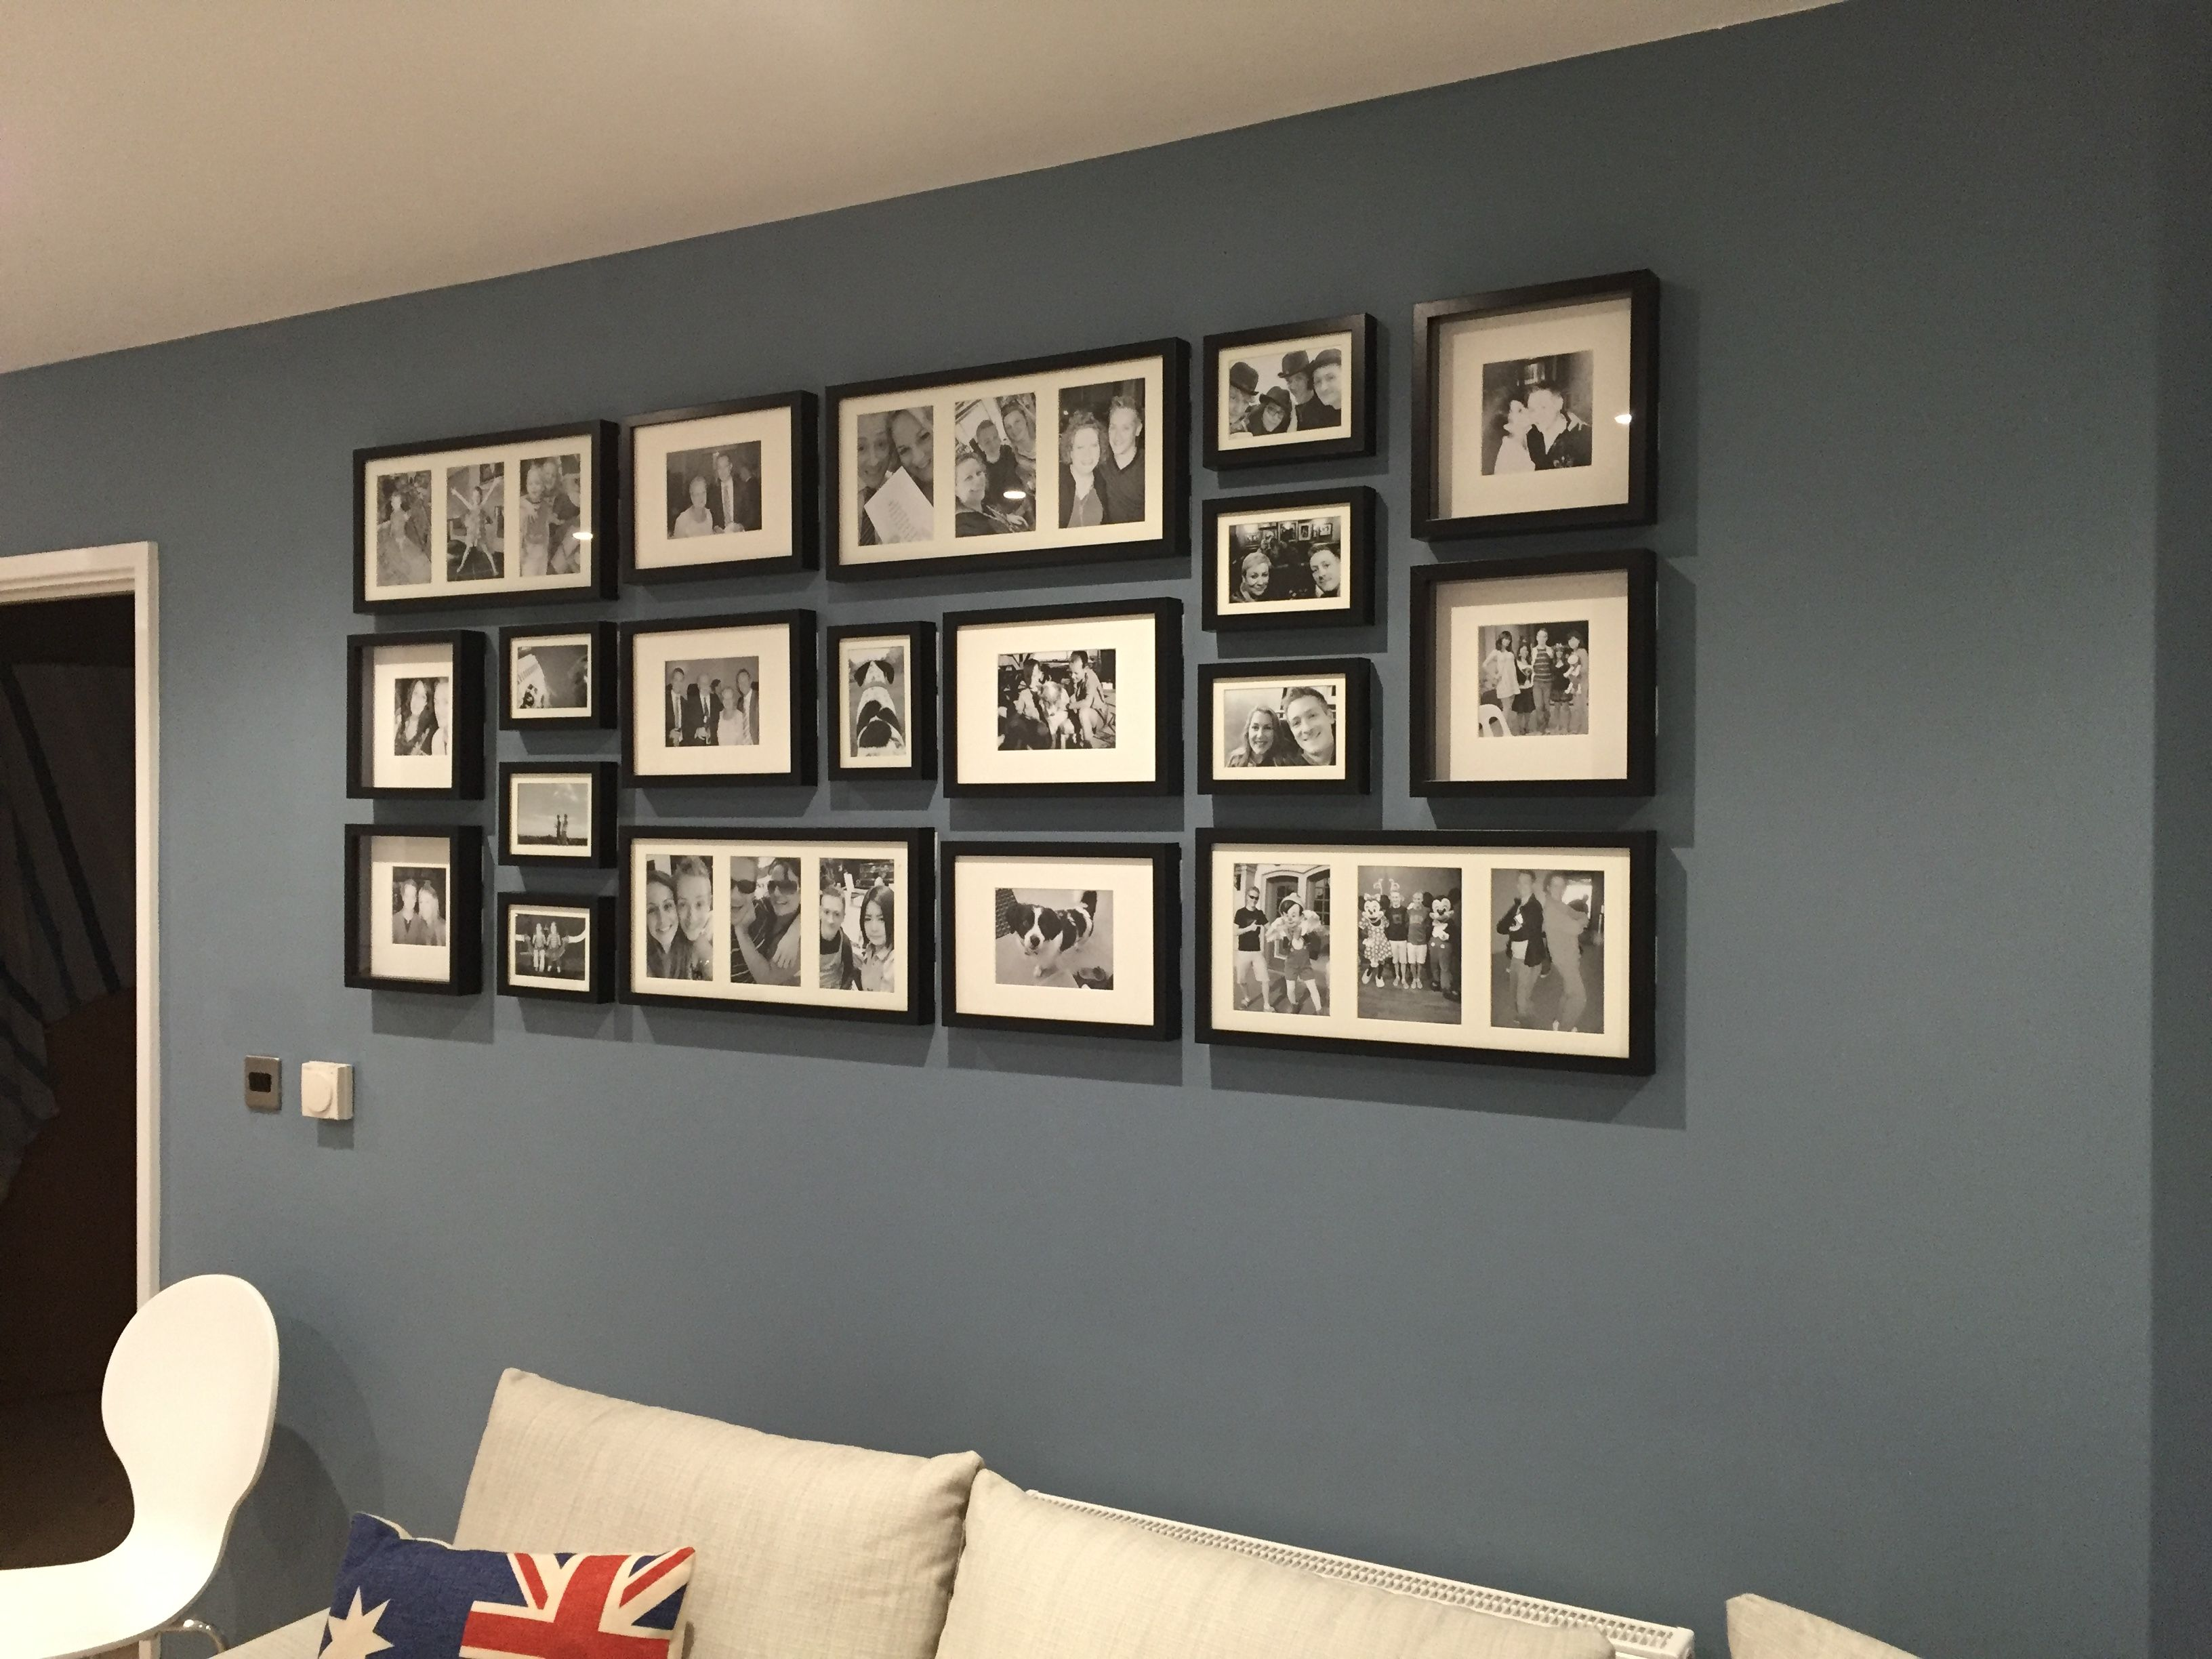 Photo wall ikea ribba frames pinteres photo wall ikea ribba frames more jeuxipadfo Images